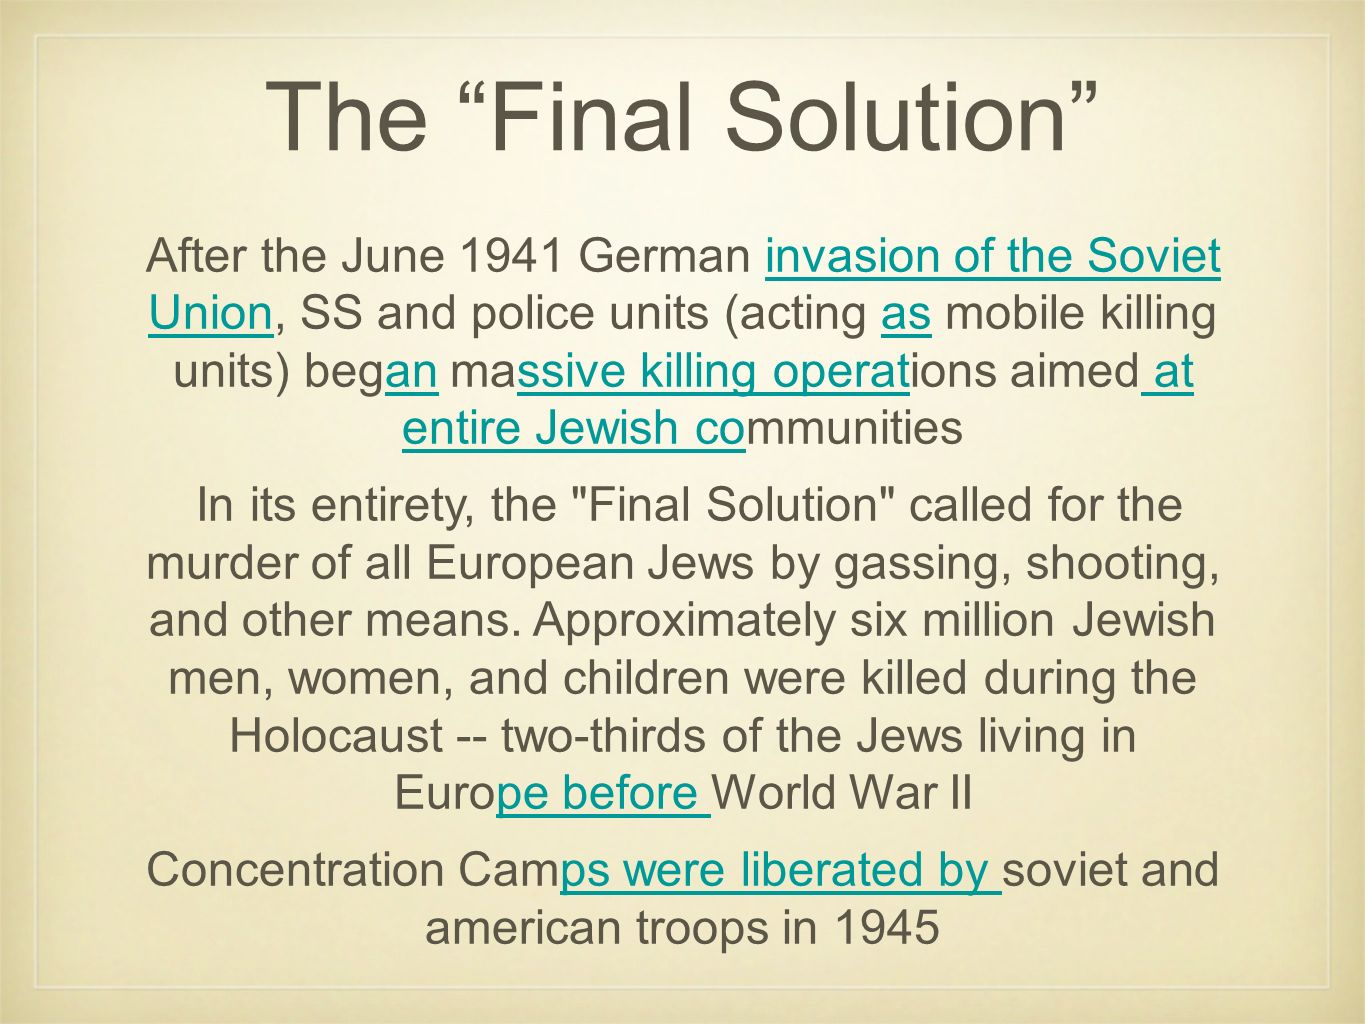 The Final Solution After the June 1941 German invasion of the Soviet Union, SS and police units (acting as mobile killing units) began massive killing operations aimed at entire Jewish communitiesinvasion of the Soviet Unionan at entire Jewish co In its entirety, the Final Solution called for the murder of all European Jews by gassing, shooting, and other means.